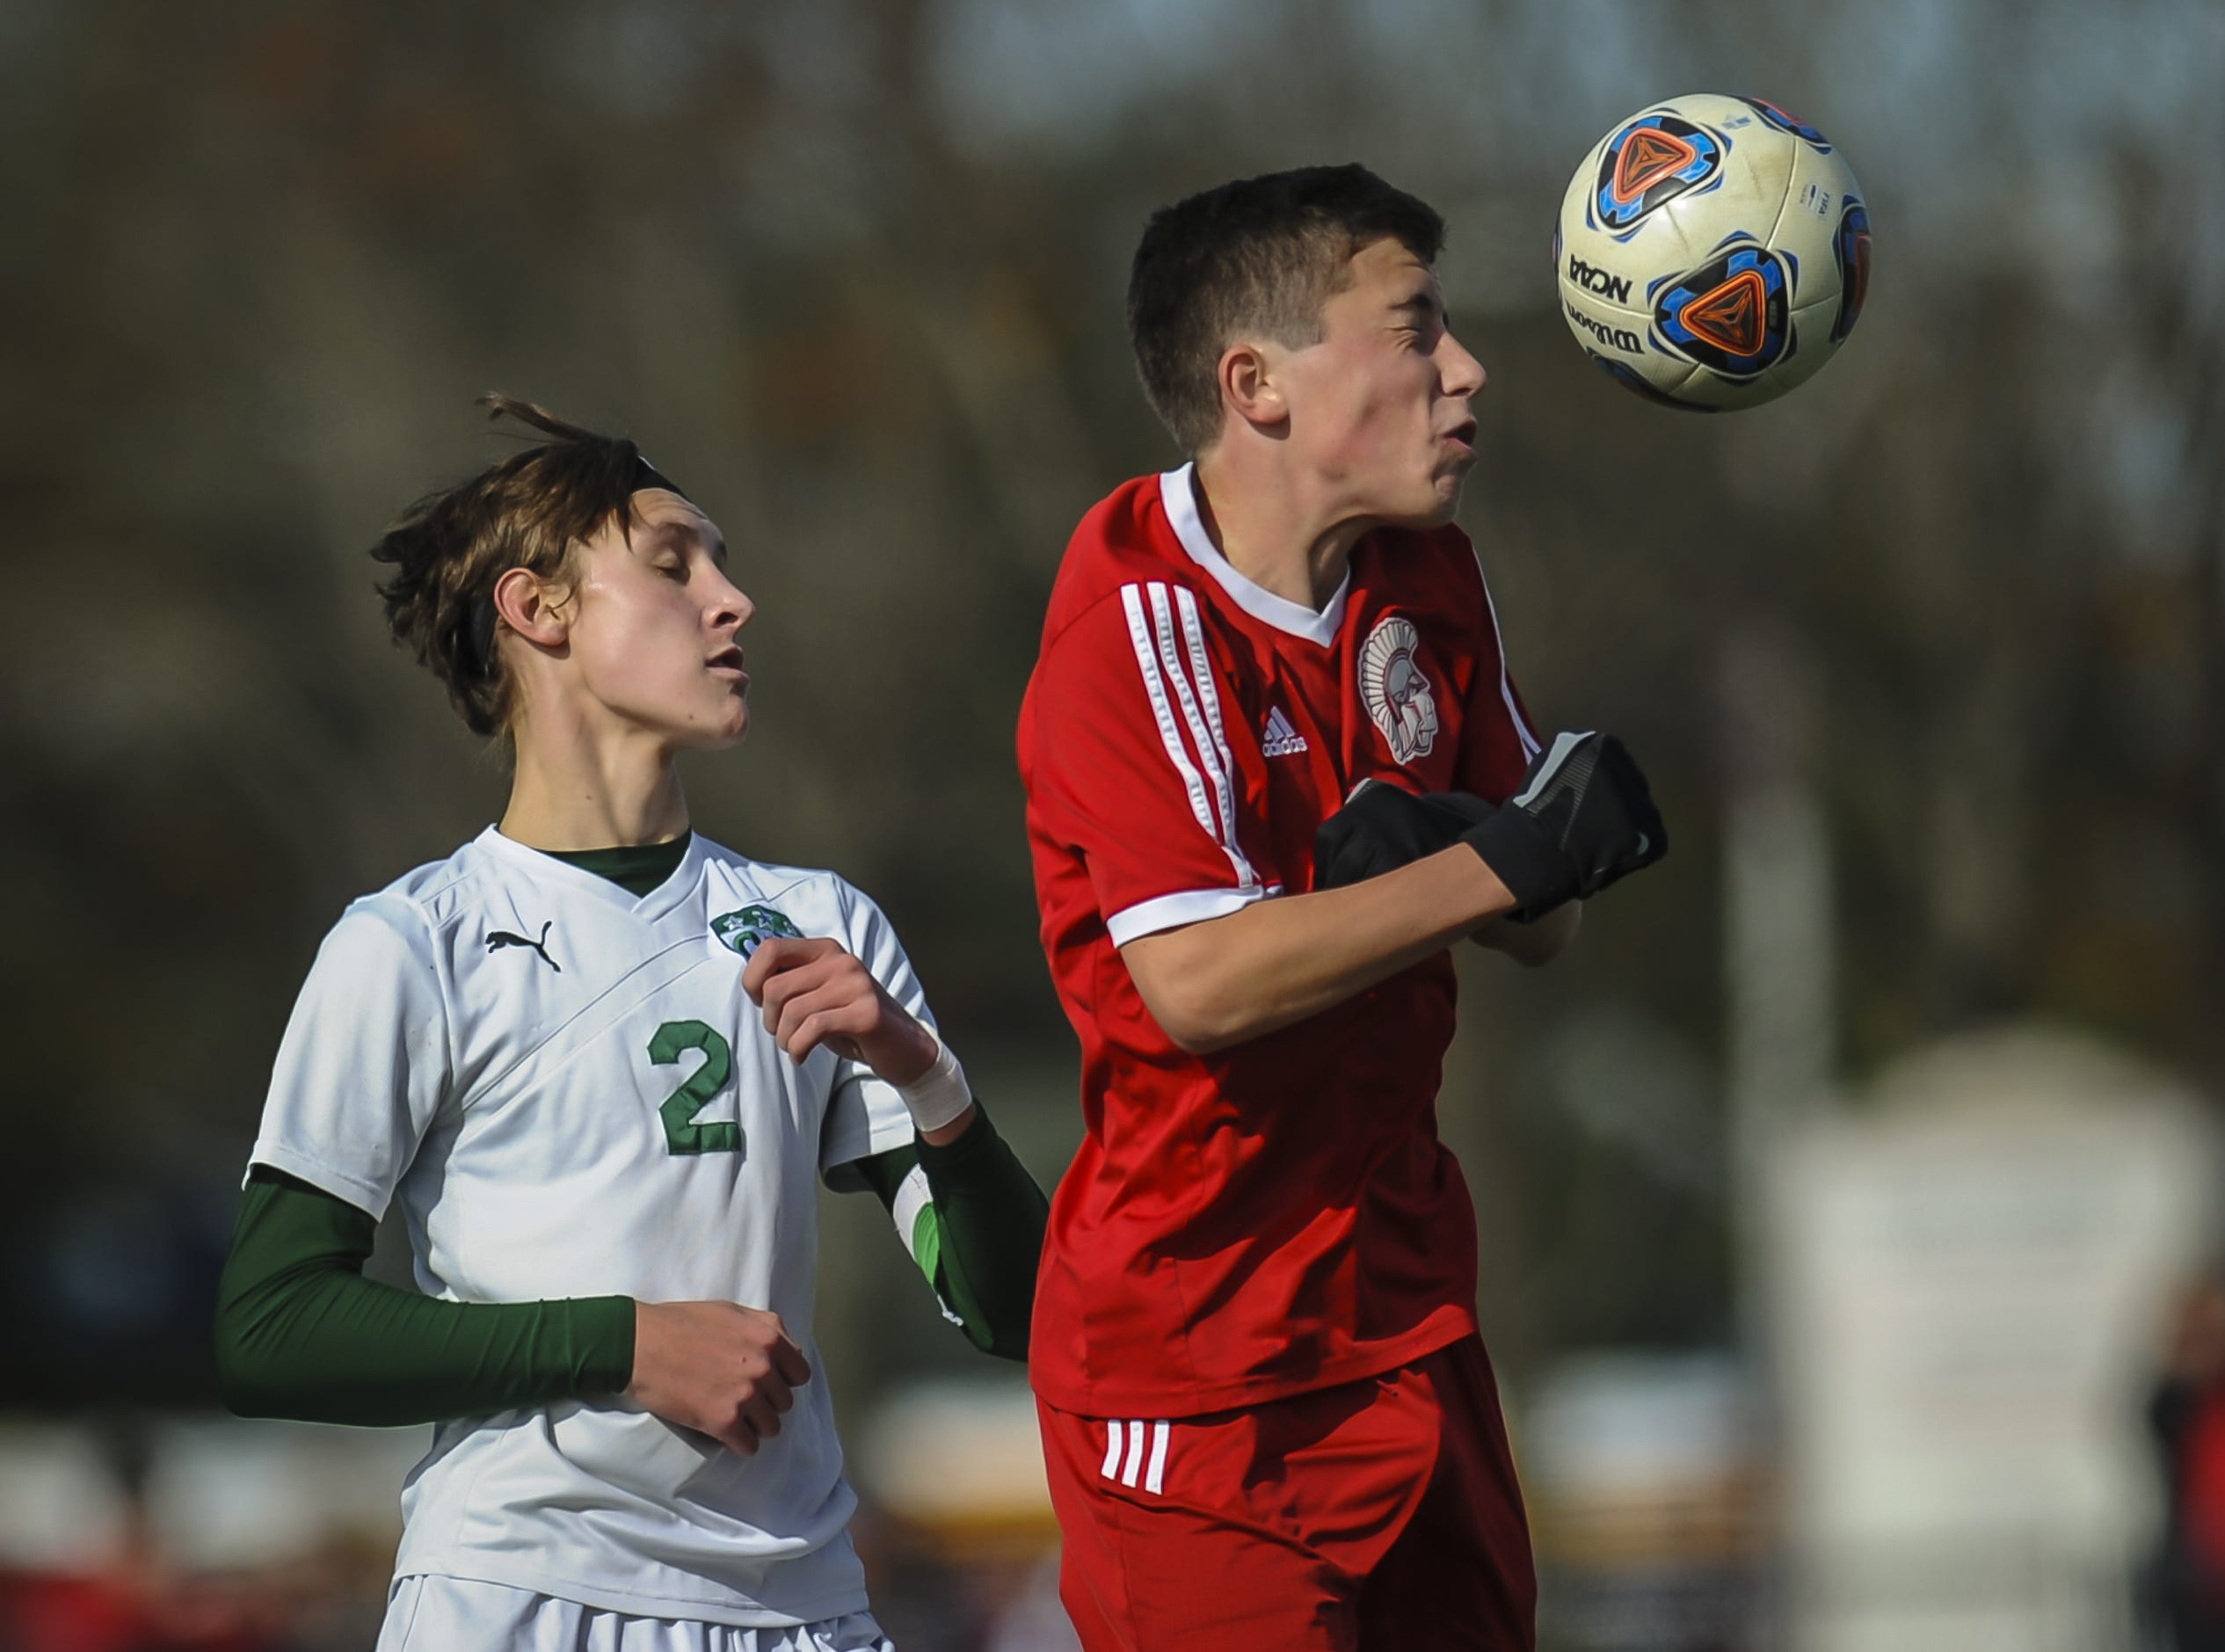 Robert Lopes of Ocean Twp., (right) heads the ball in front of Brooks Condon of Colts neck in the NJSIAA Central Jersey, Group III final on Nov. 8, 2018 in Ocean.